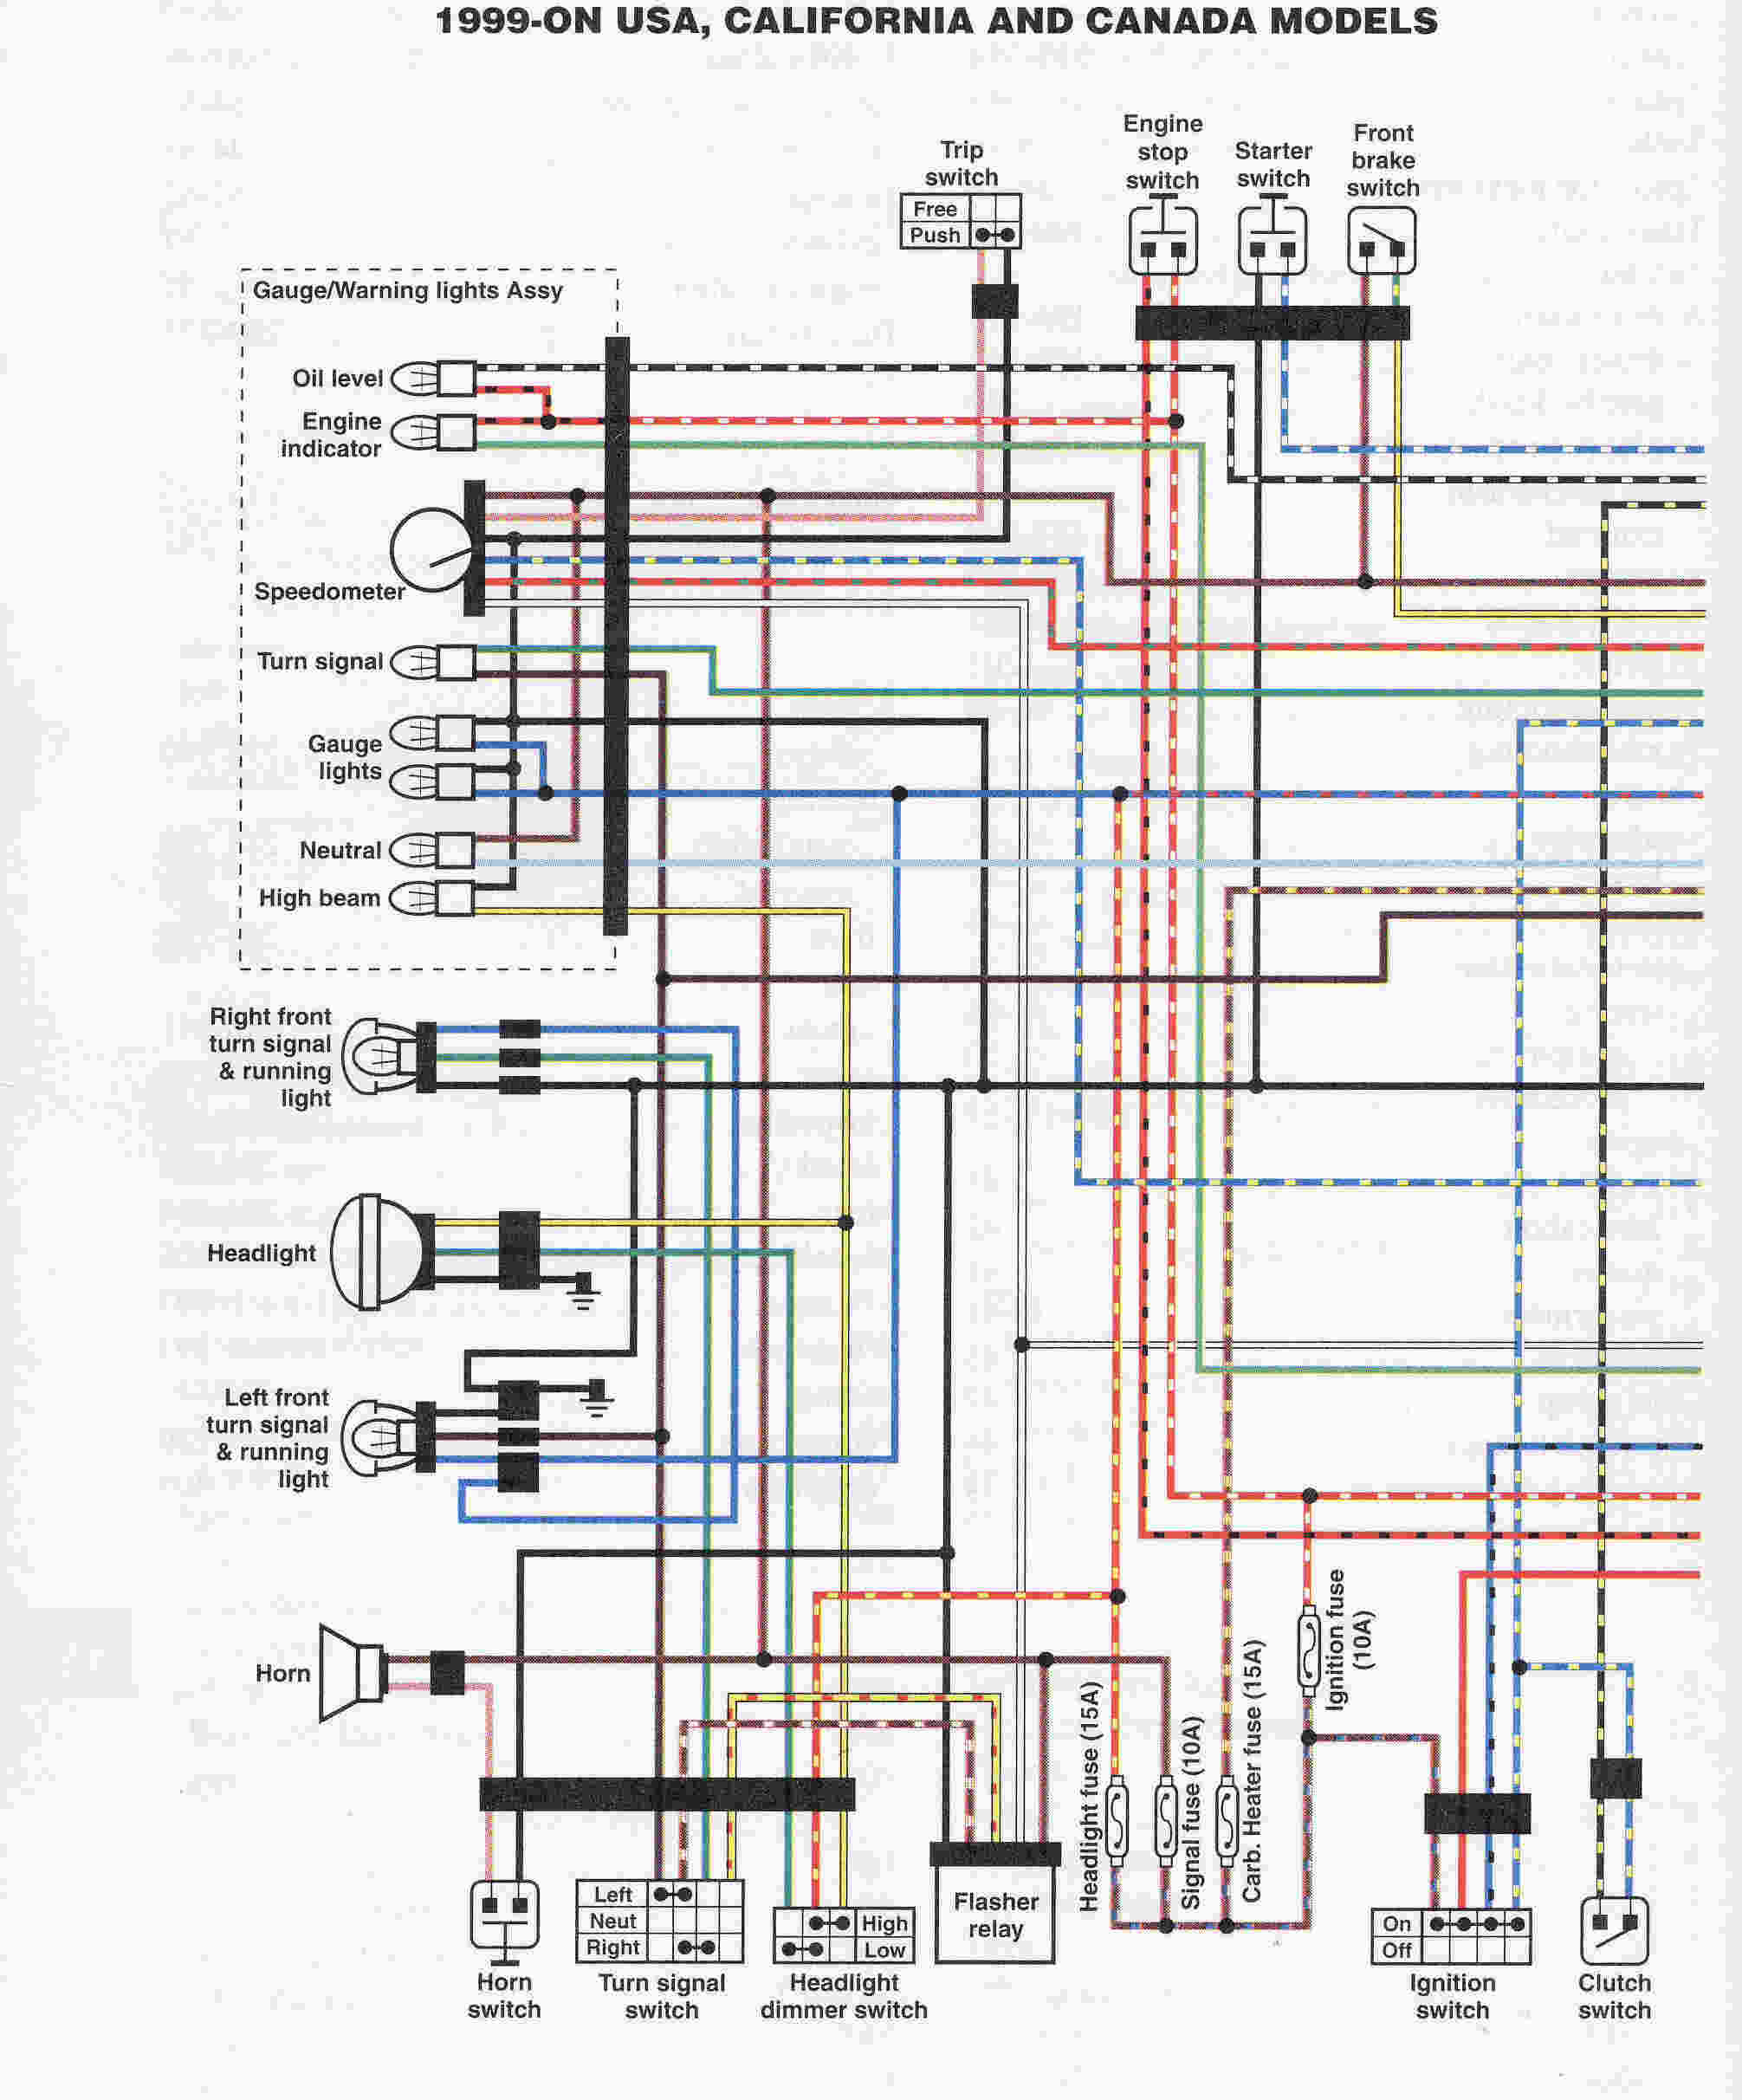 Wiring US 01 yamaha yfm350xp warrior atv wiring diagram and color code 2001 yamaha roadstar 1600 wiring diagram at soozxer.org